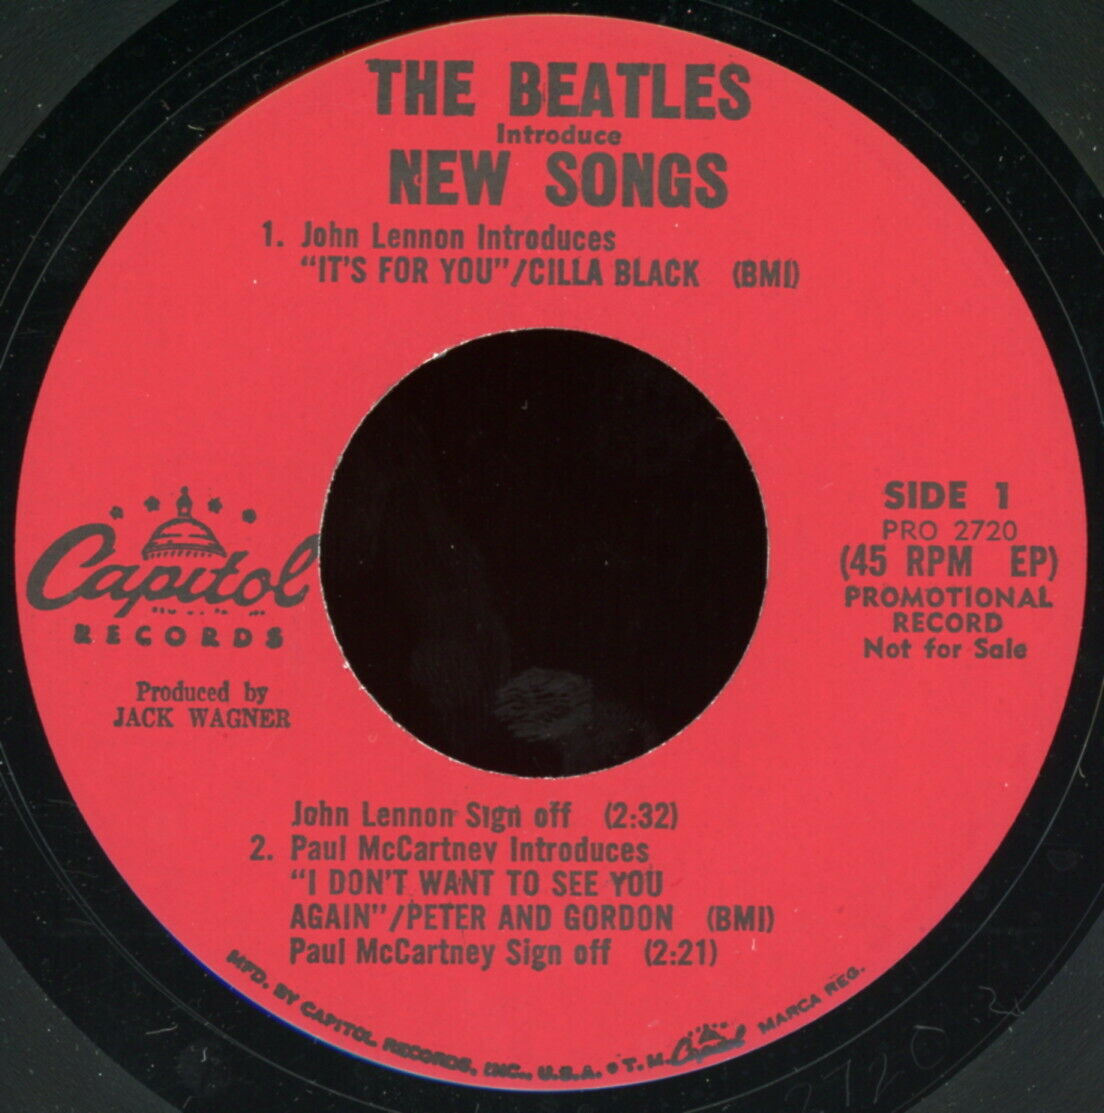 THE BEATLES INTRODUCE NEW SONGS 45 Promotional Capitol Records PRO 2720